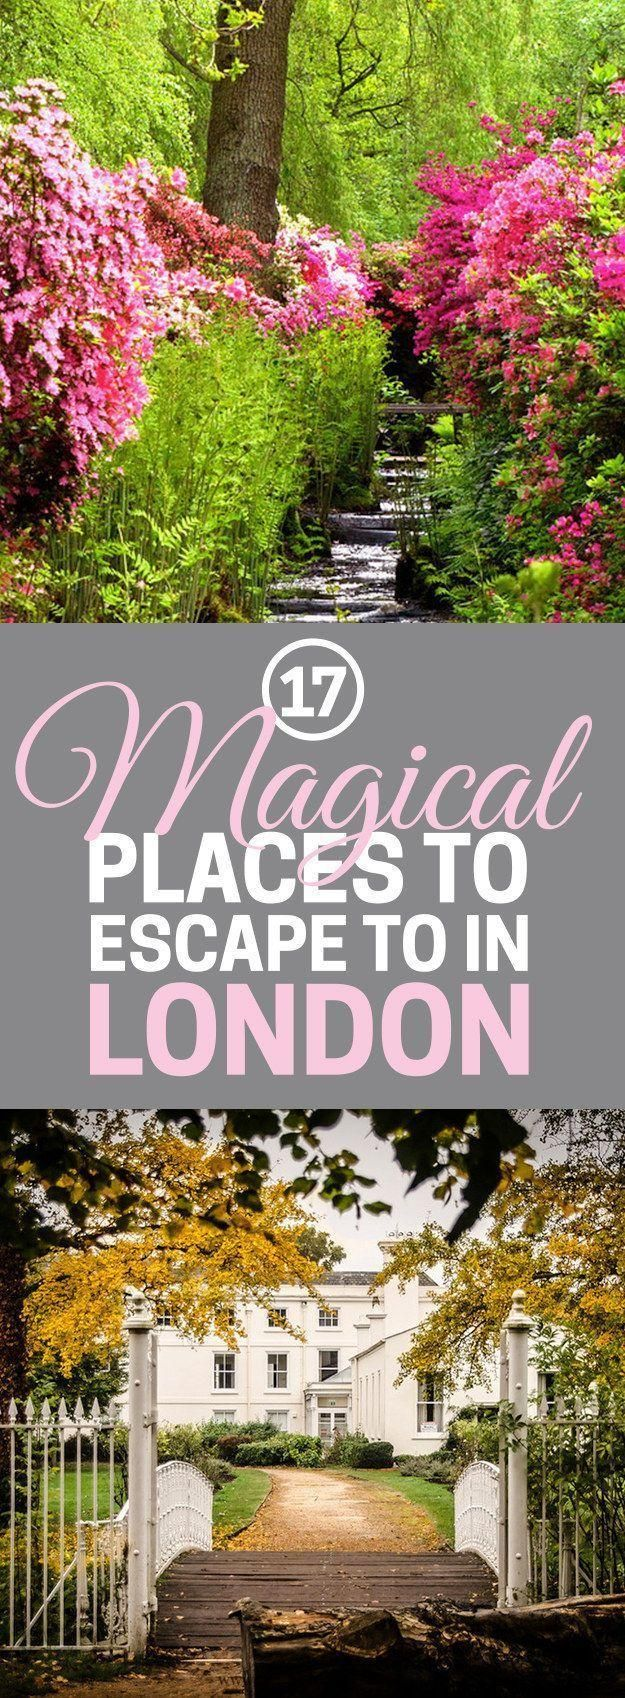 Baby Accessories 17 Magical Spots To Escape To In London